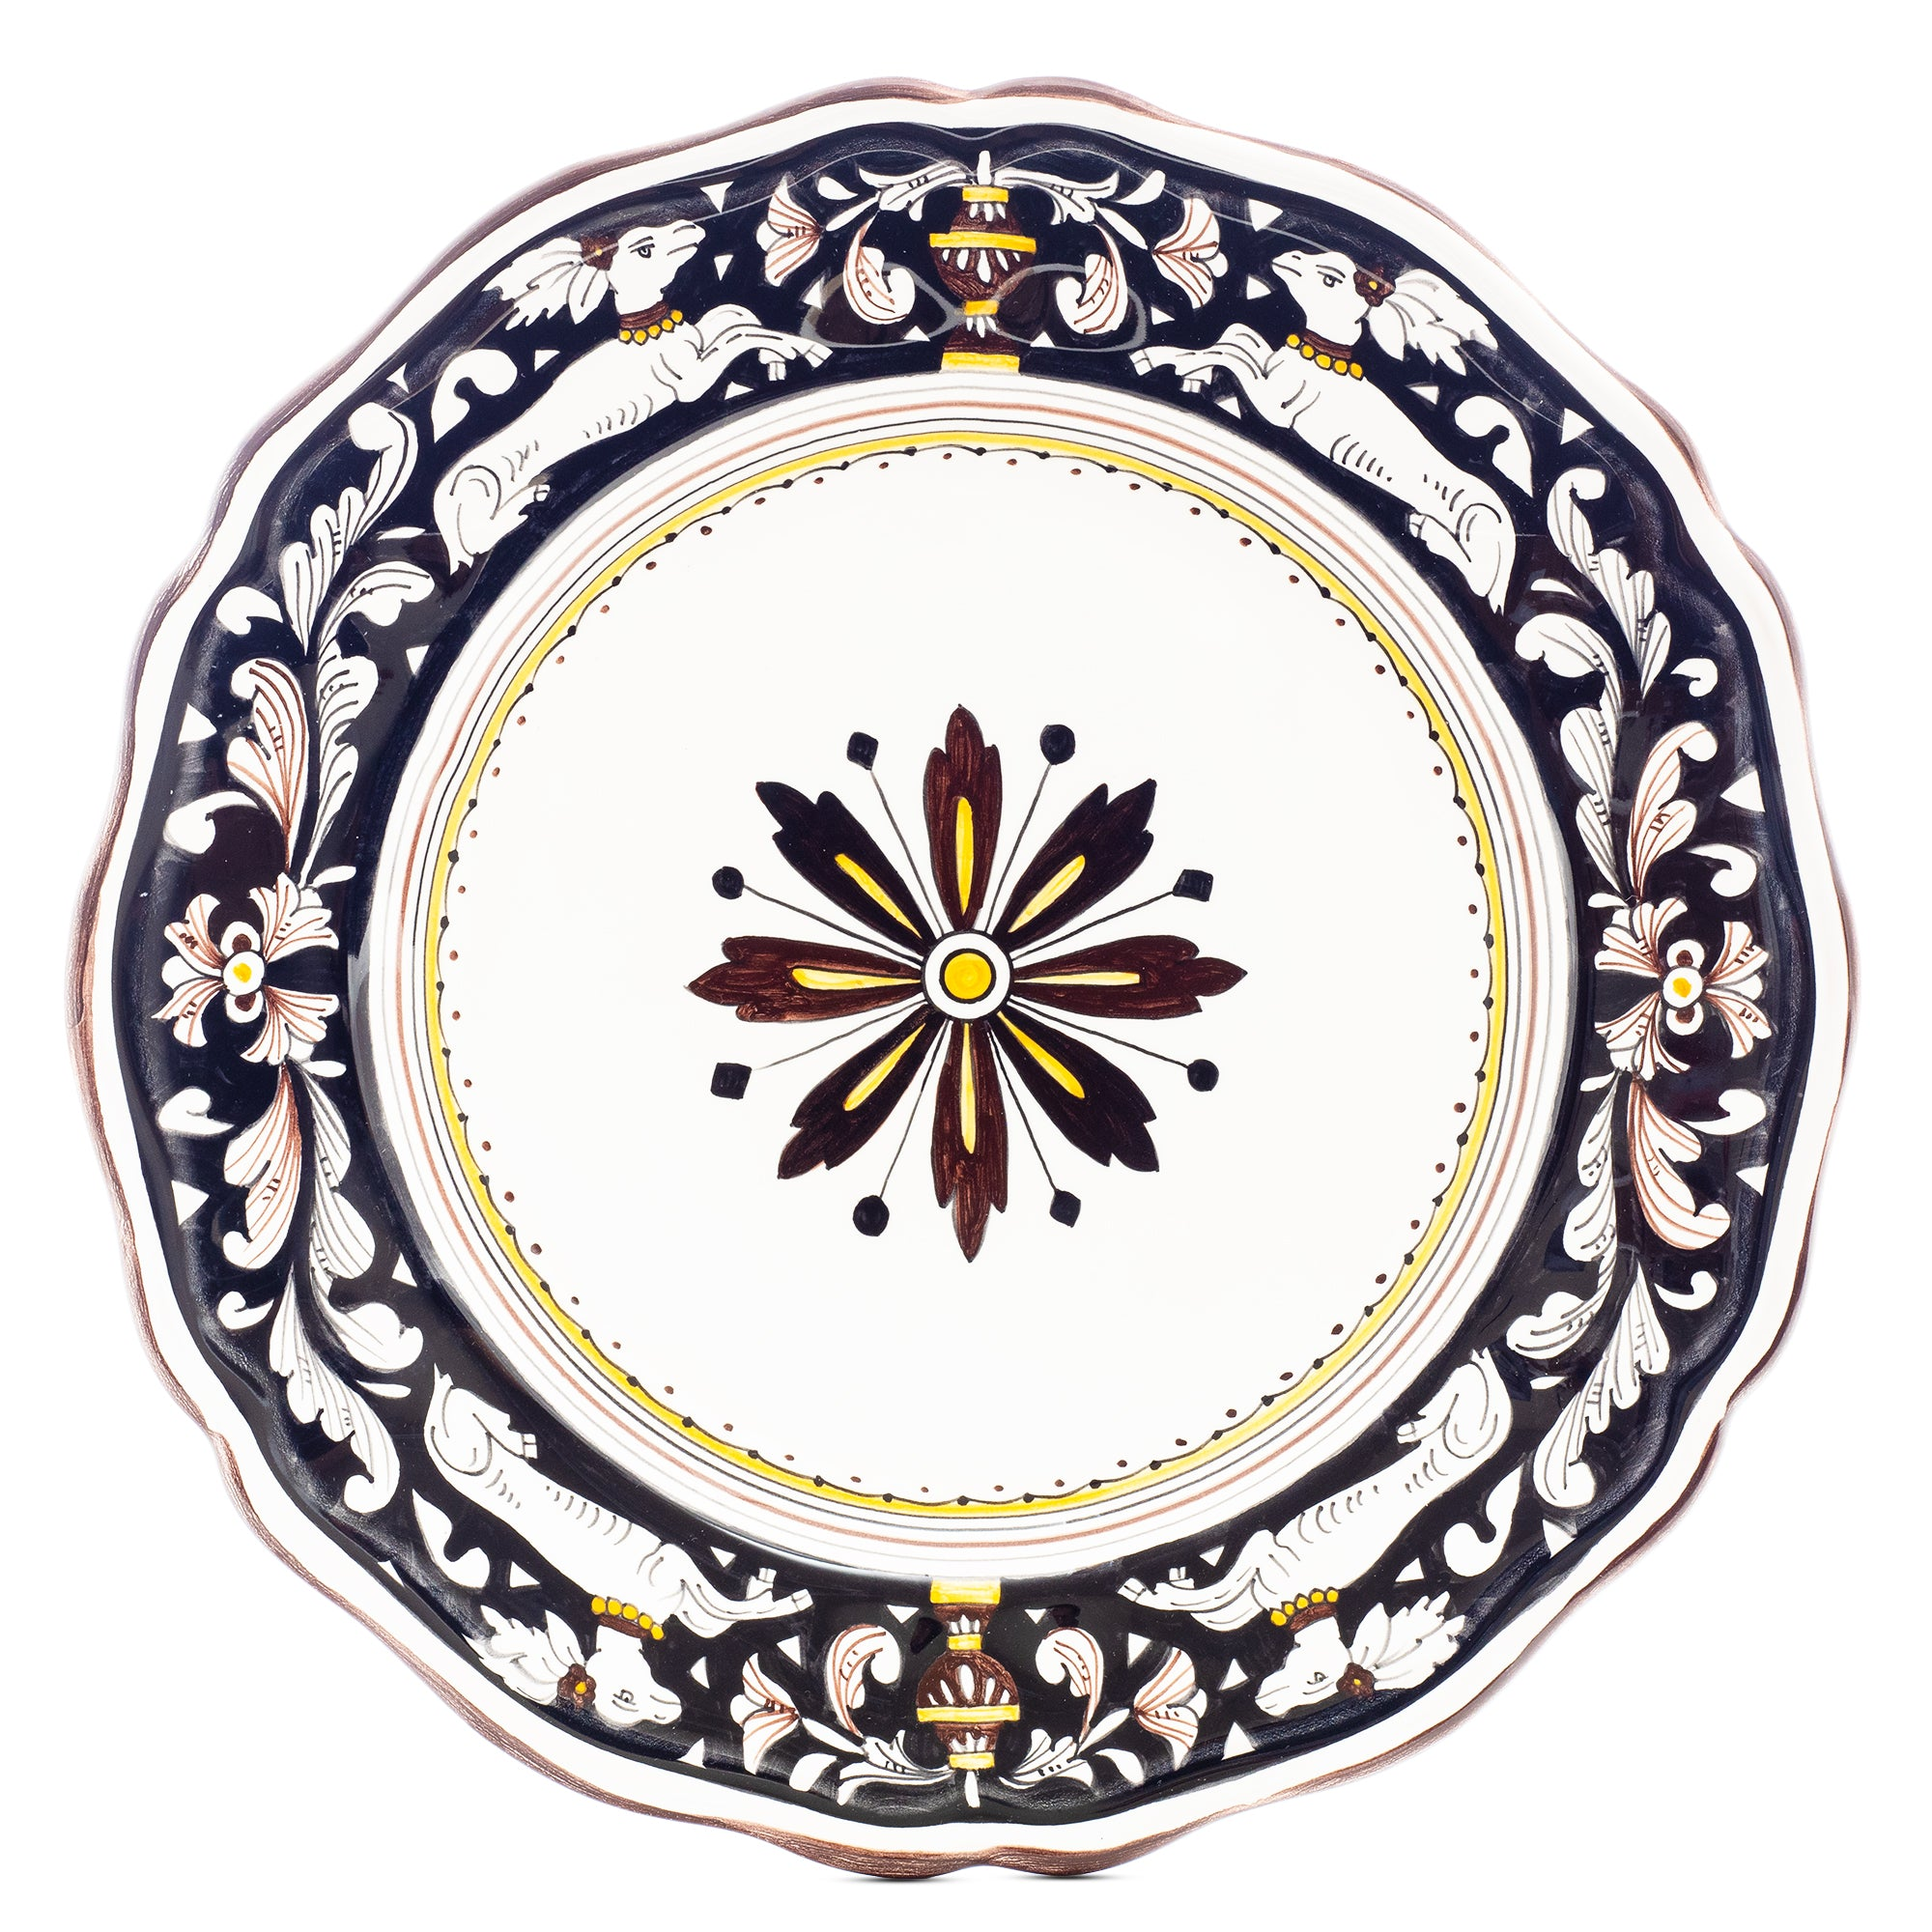 Siena Dinner Plate, Full Design